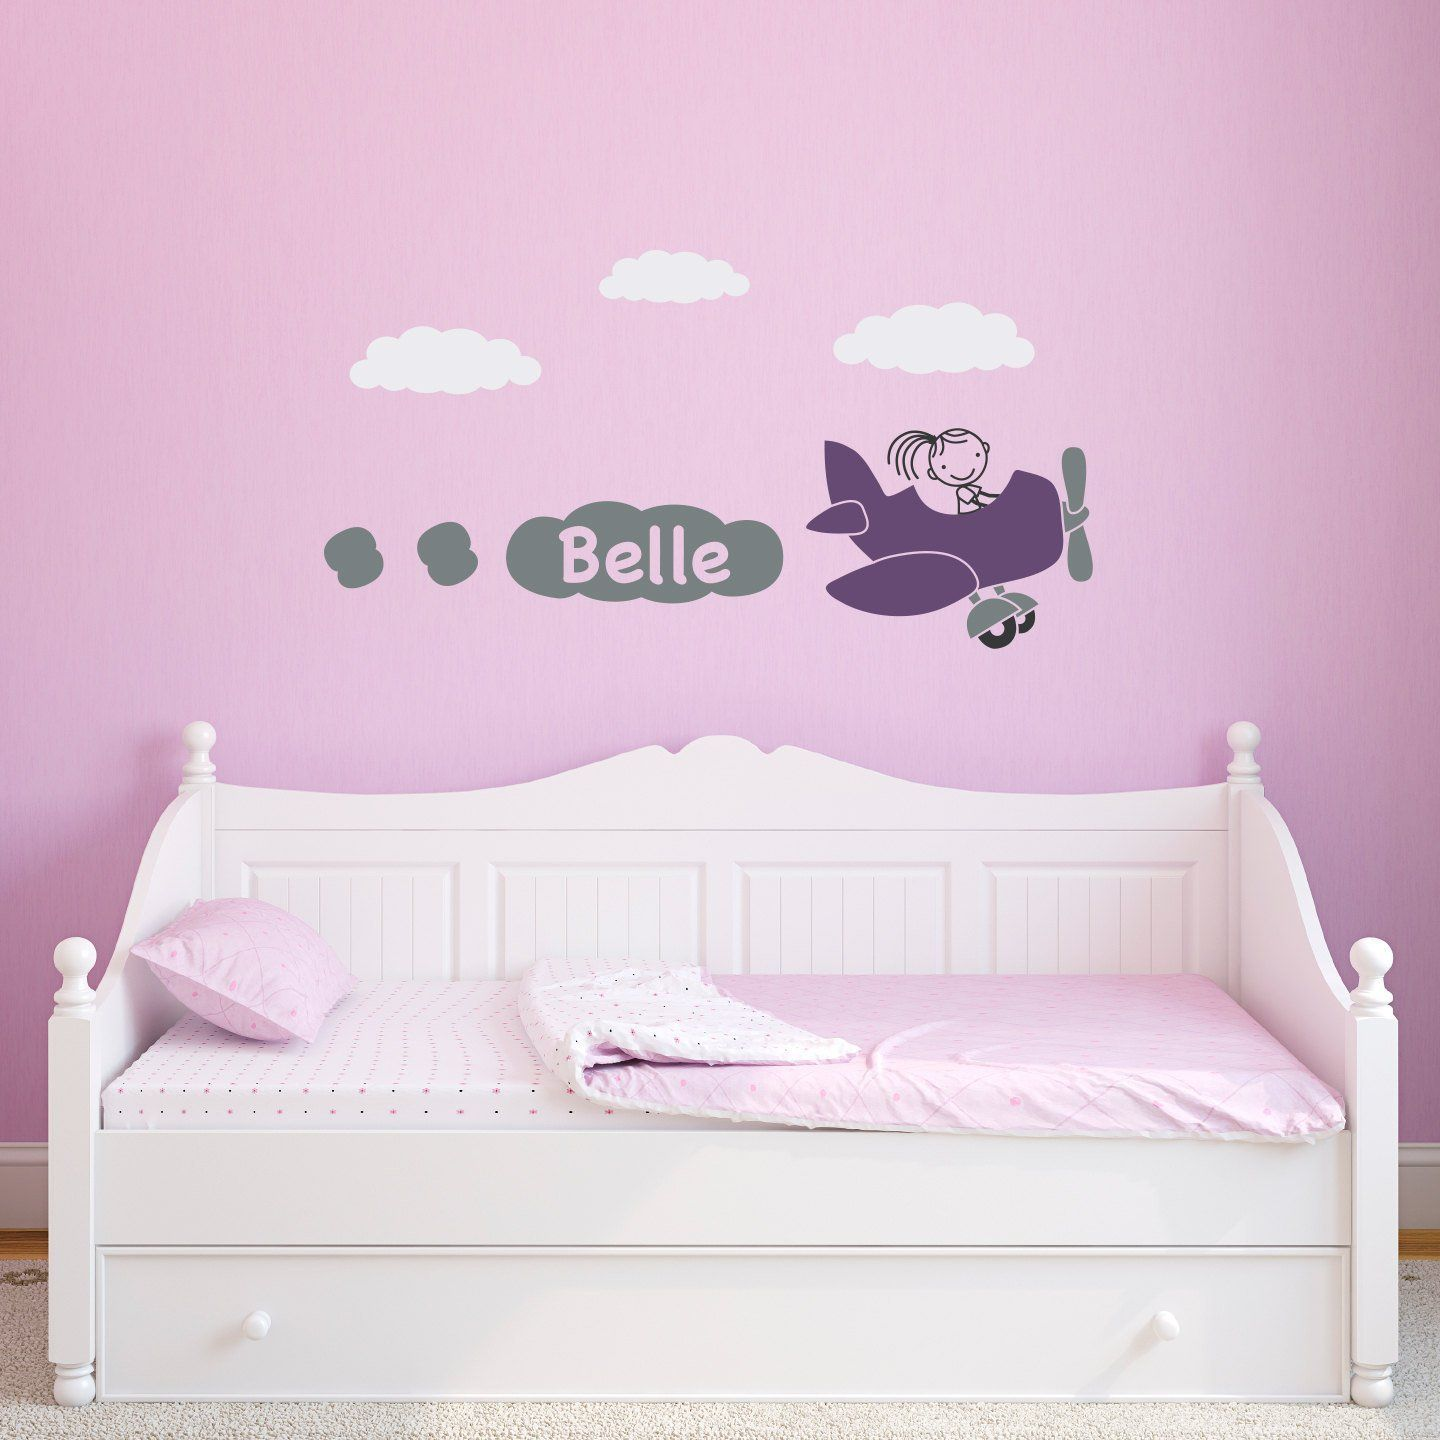 Airplane Wall Decal with Girls Personalized Name - Plane Wall Sticker - Bedroom Decal - Children & Airplane Wall Decal with Girls Personalized Name - Plane Wall ...